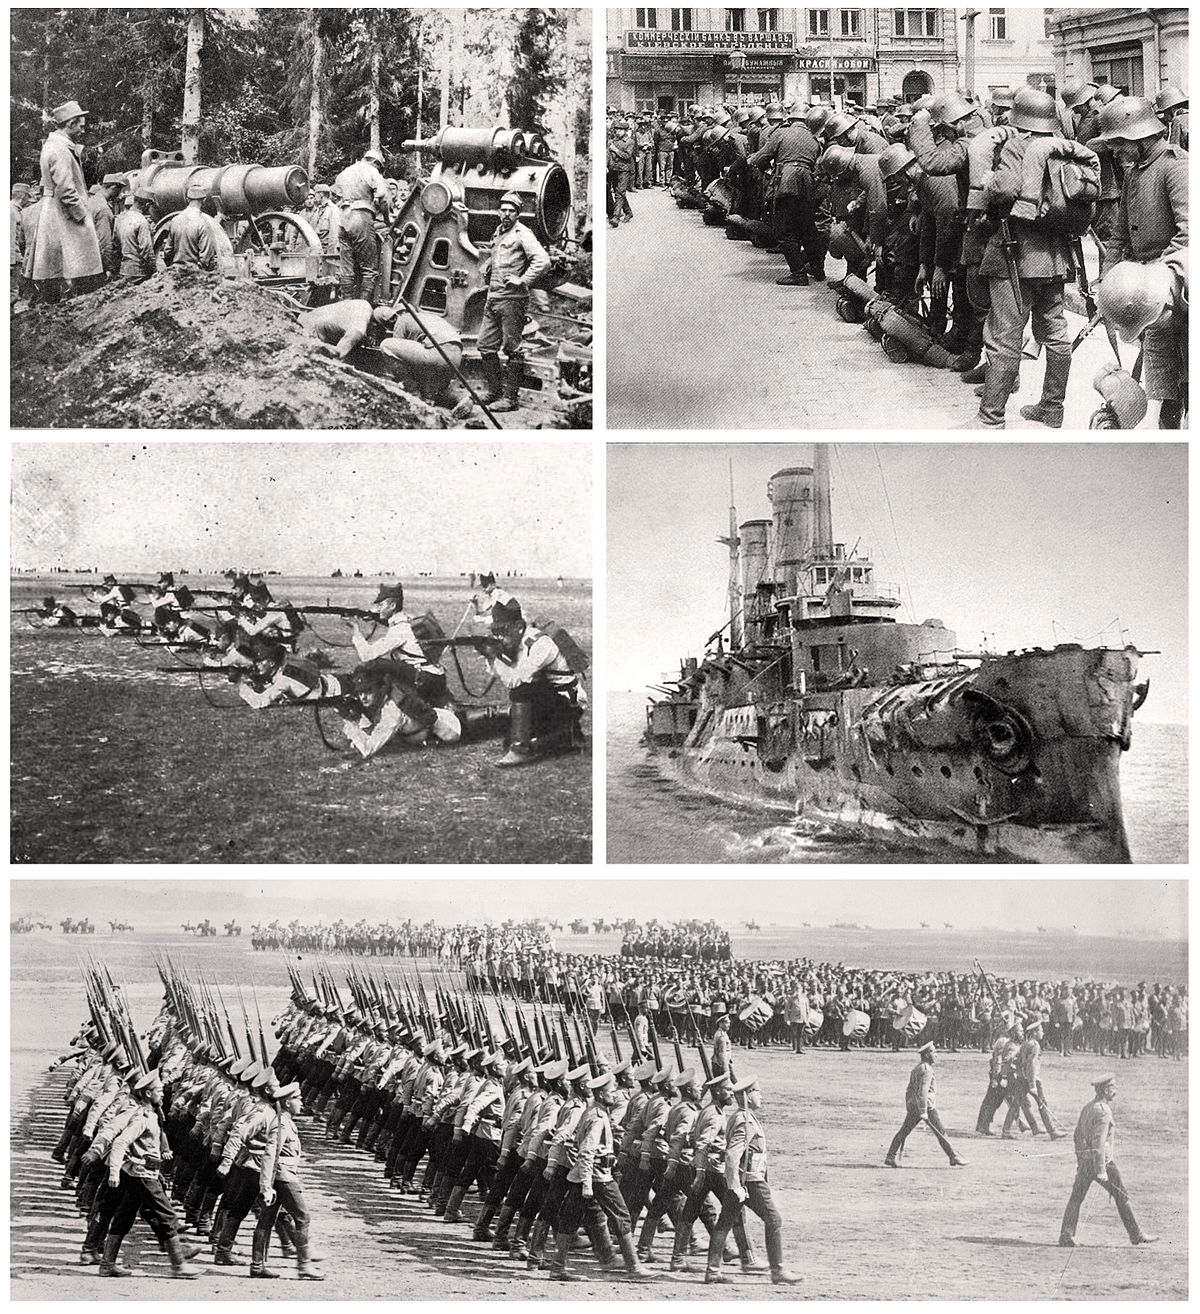 reasons for allied victory and german collapse ww1 Russia's exit russia's exit from world war one, in 1917, must have made an eventual victory for germany seem quite likely to german leaders, and vindicated their nurturing of russian dissidents.